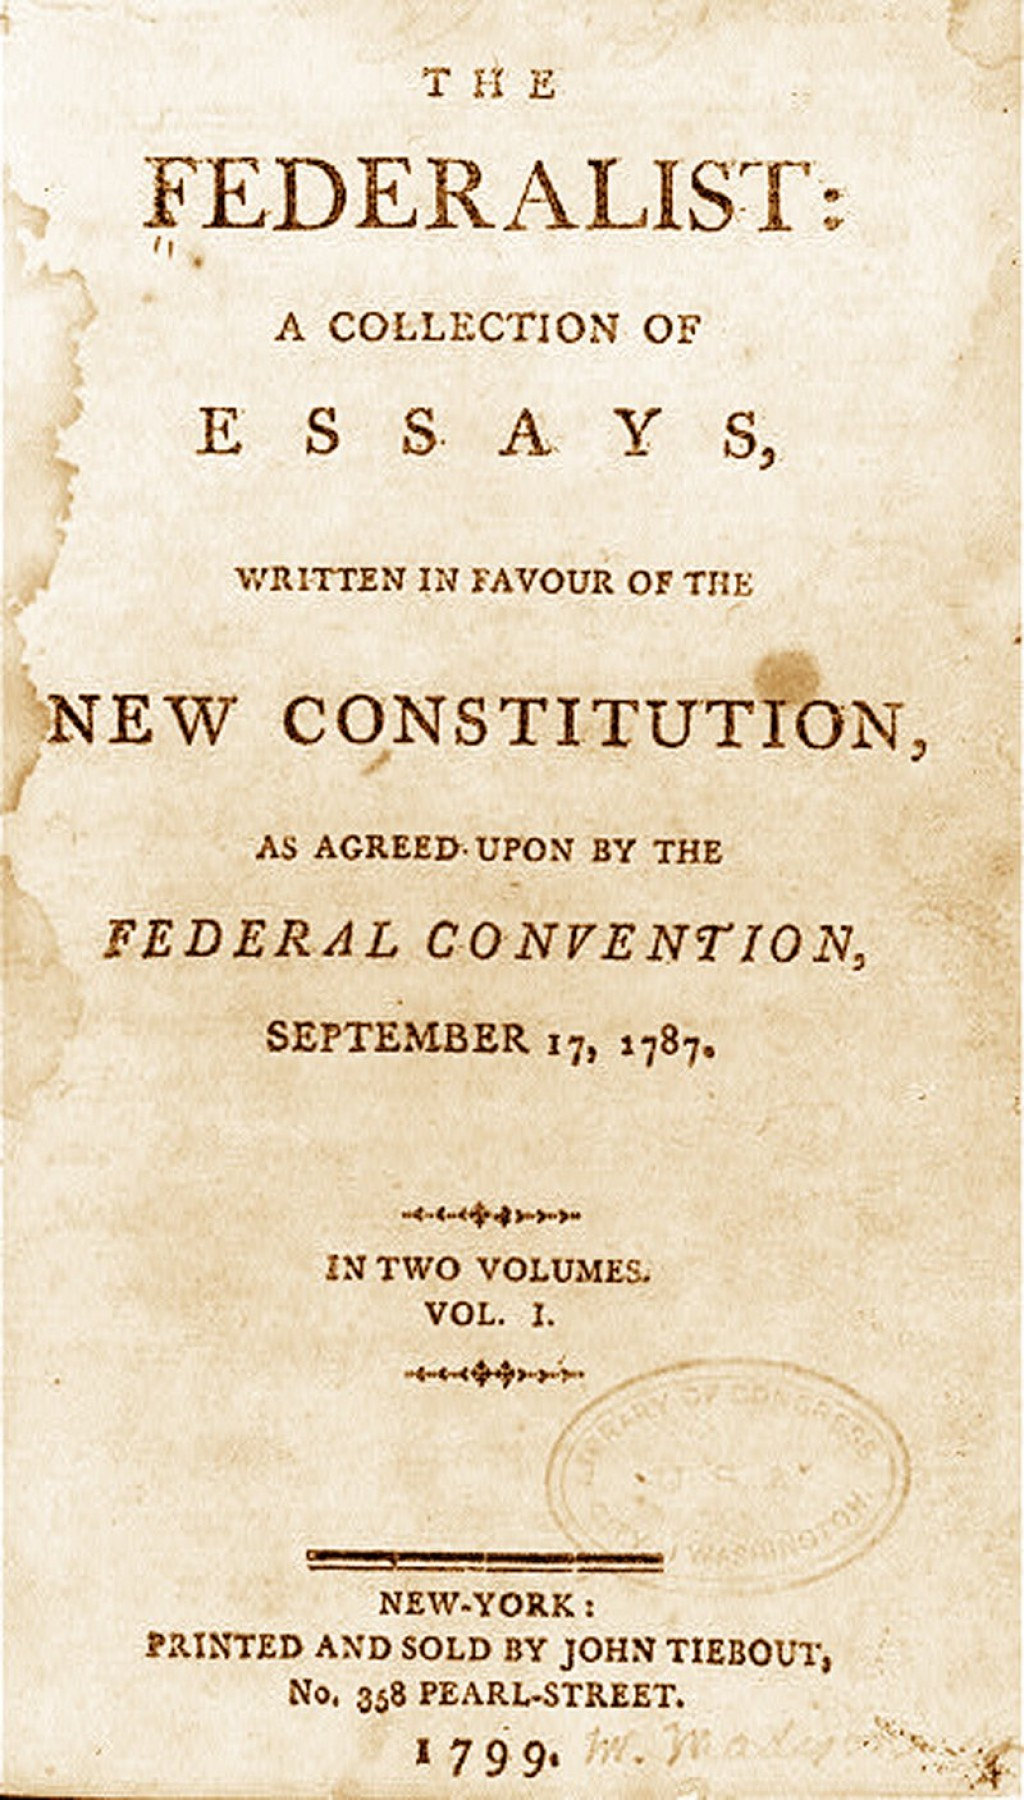 018 Essay Example Federalistpapers Alexander Hamilton Frightening Essays 51 Federalist Papers 78 Did Wrote Large